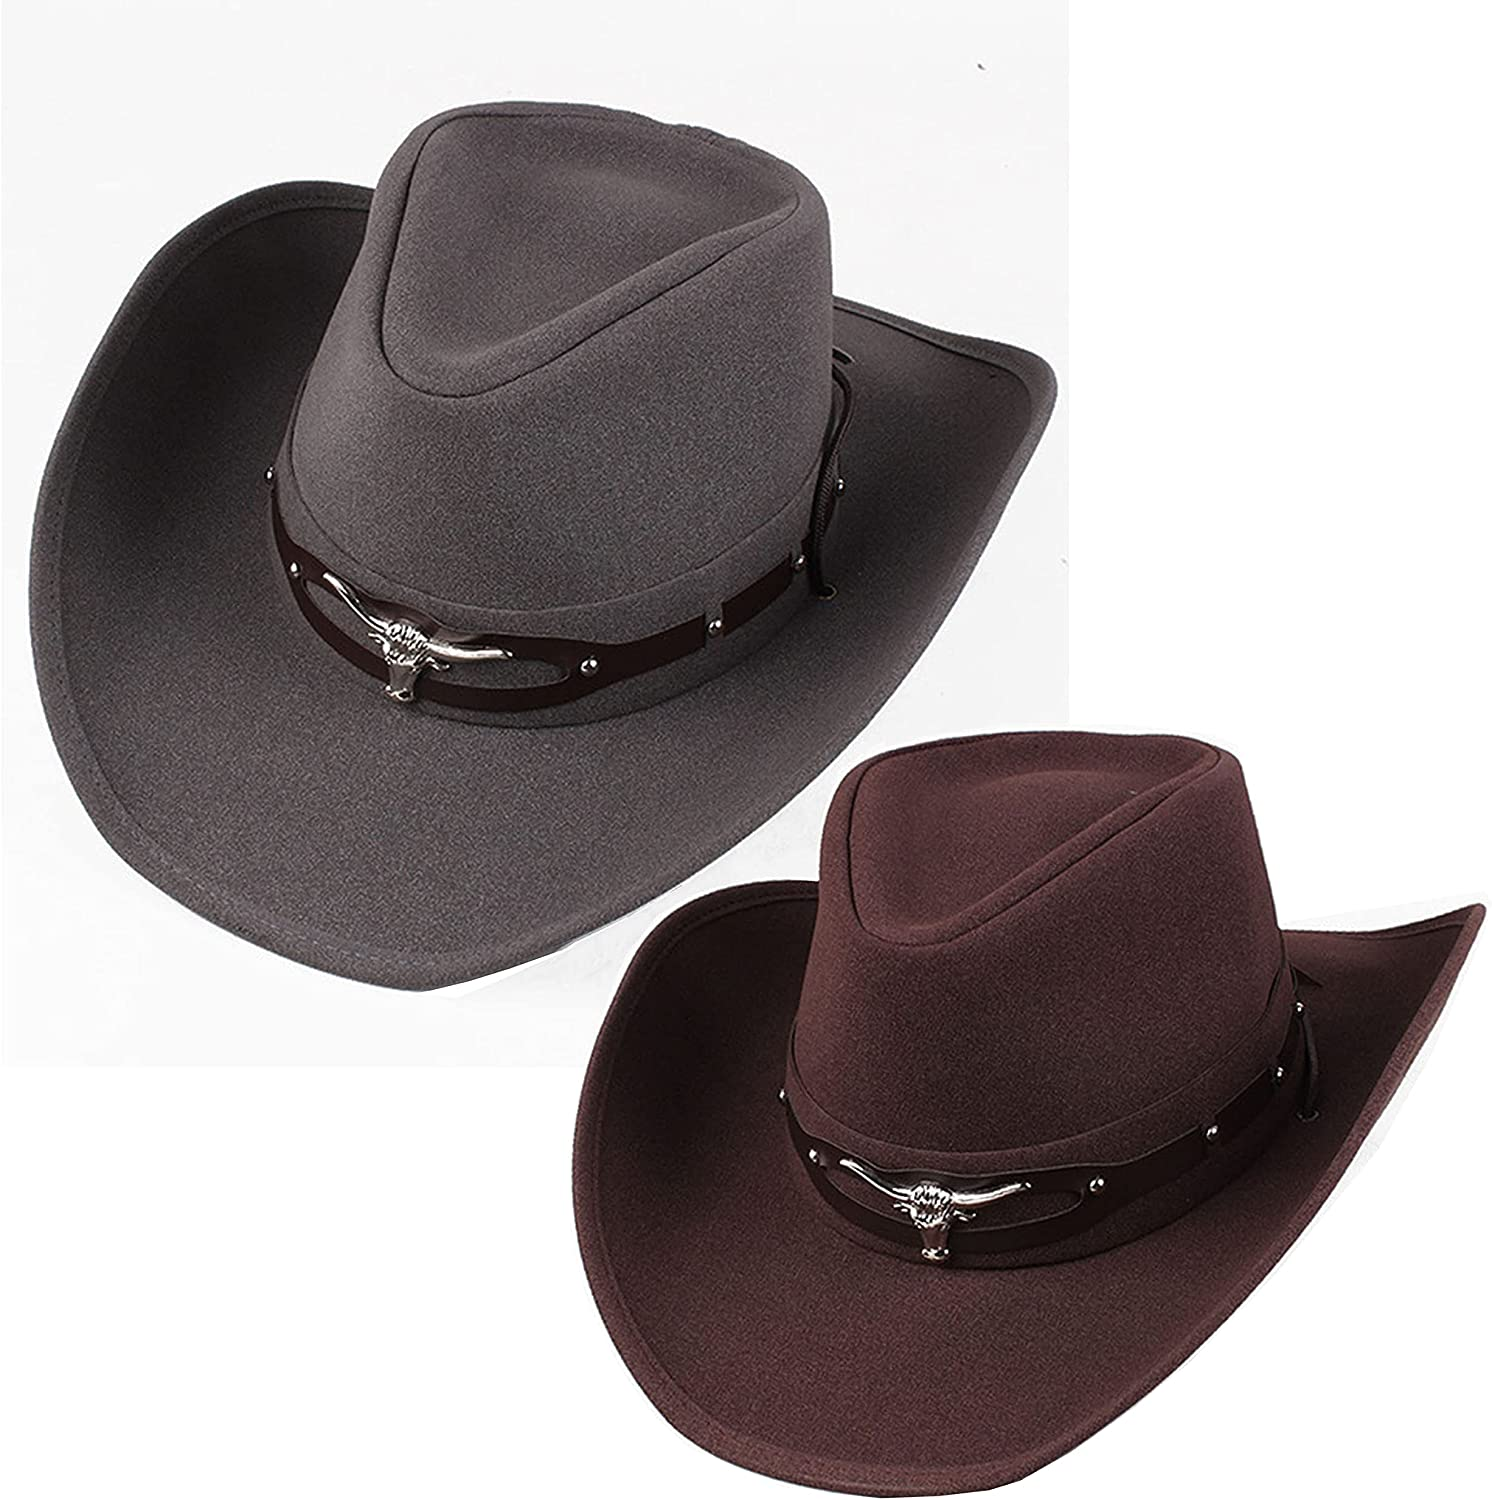 Cheap LXFMZ Cowboy Hat Western Outback Style Men's Women's Clearance SALE Limited time